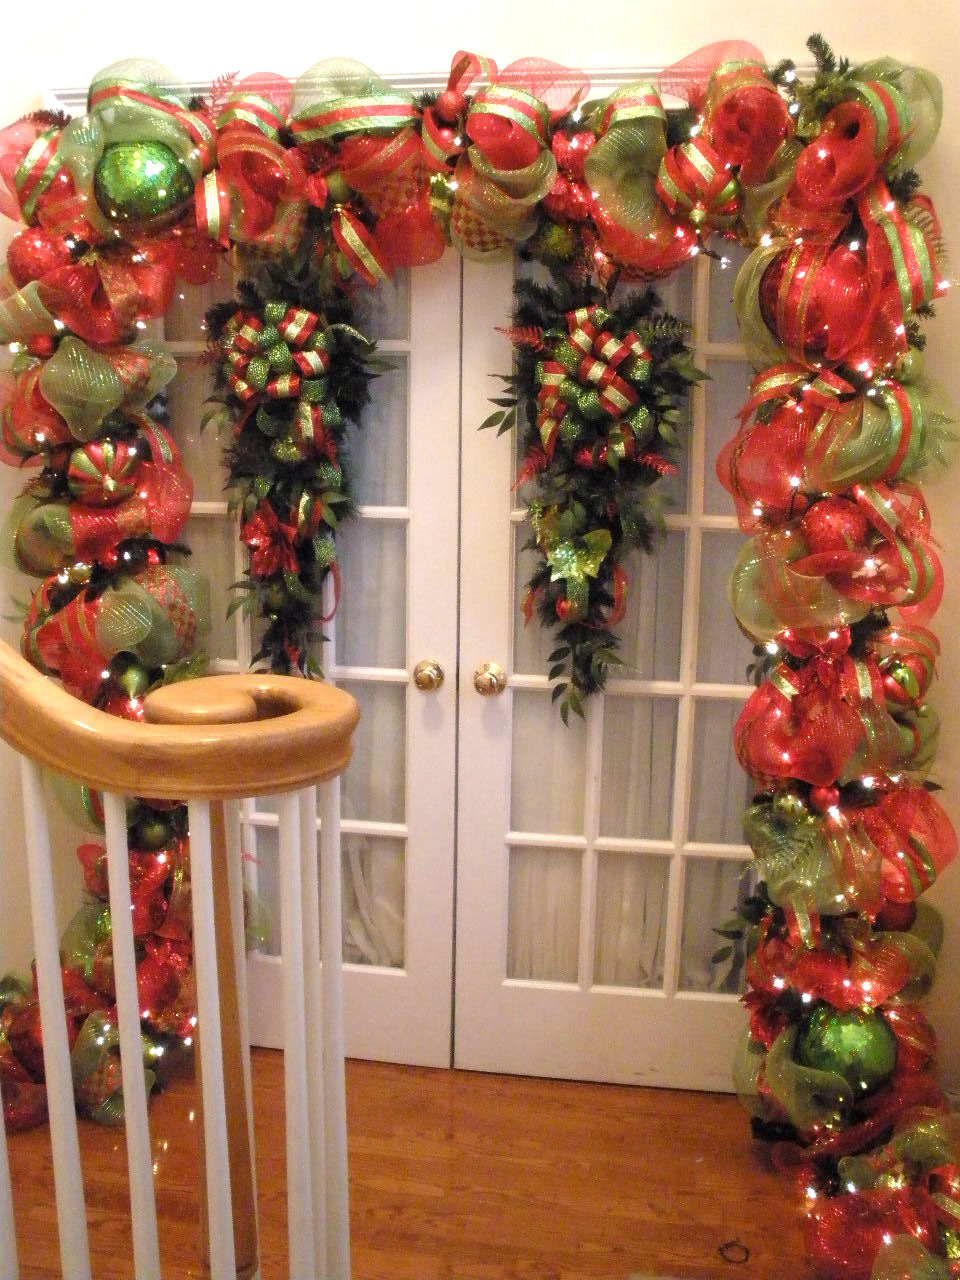 Having a small space may include more storage challenges, but that doesn't mean you can't enjoy a beautiful space. 42 Christmas Decorations Ideas With Garland - Decoration Love